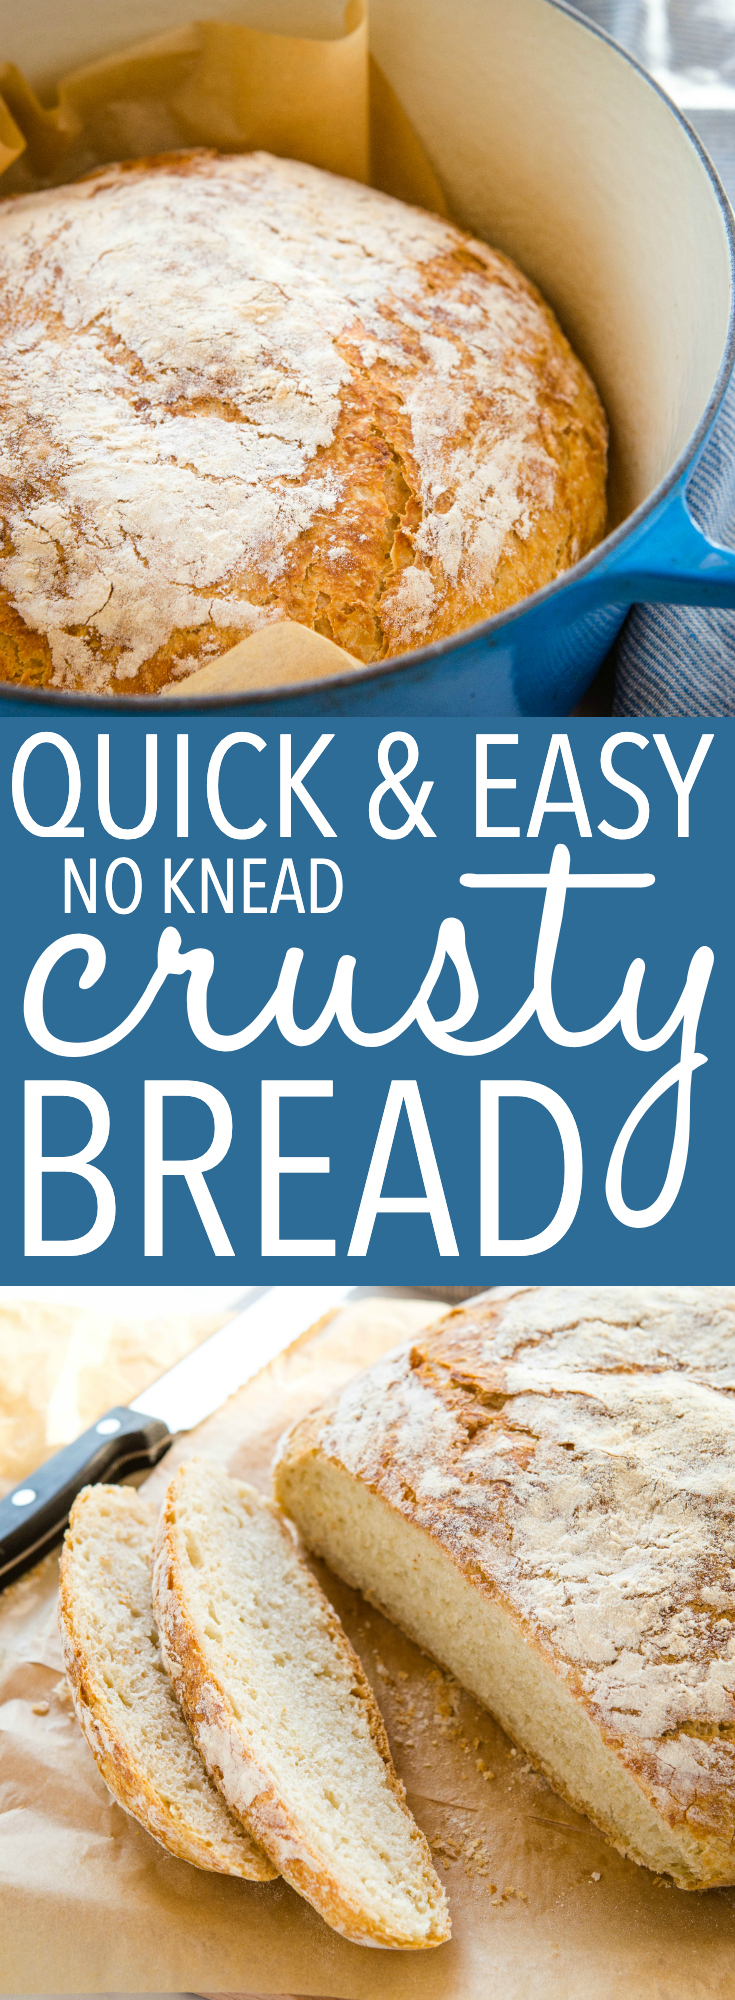 Make this quick no knead bread with 4 ingredients and a Dutch oven! No overnight rise and no kneading. It's soft bread with a crispy crust! Recipe from thebusybaker.ca! #homemadebread #crustybread #bakerybread #artisanbread #dutchovenbread #bread #baking #yeast via @busybakerblog